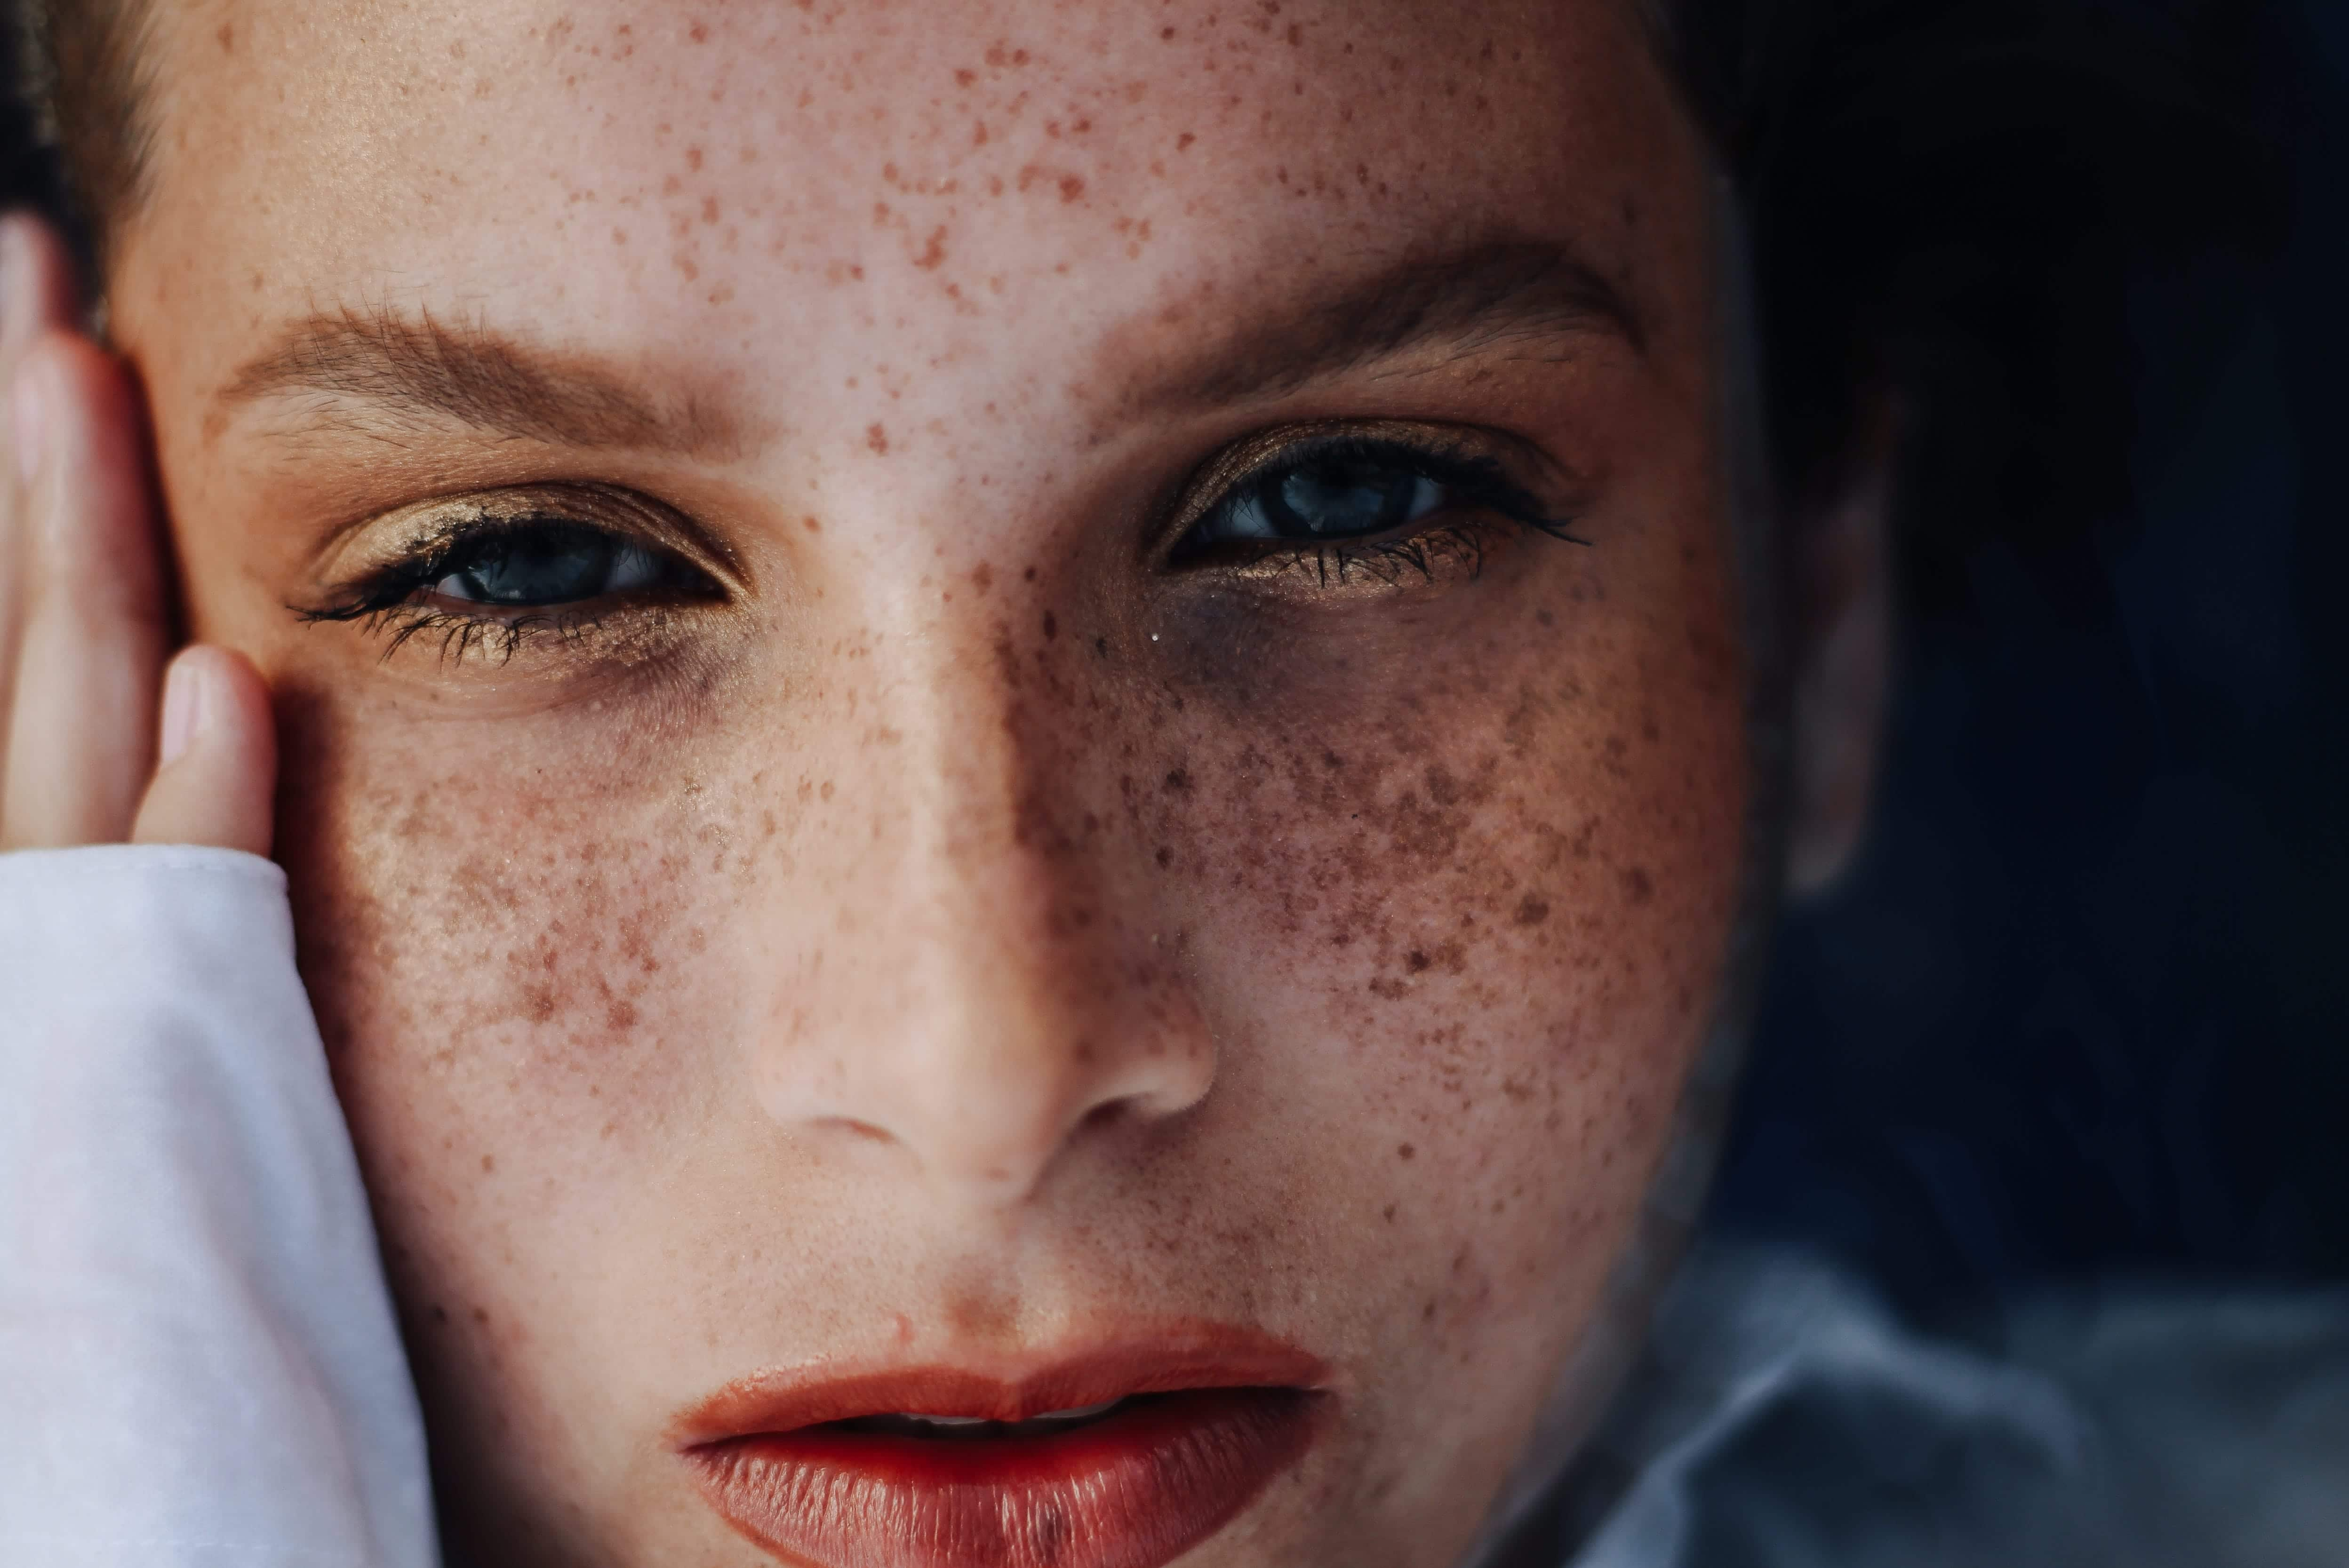 close up photo of woman s face 1844272 min 2 The Pixie Life